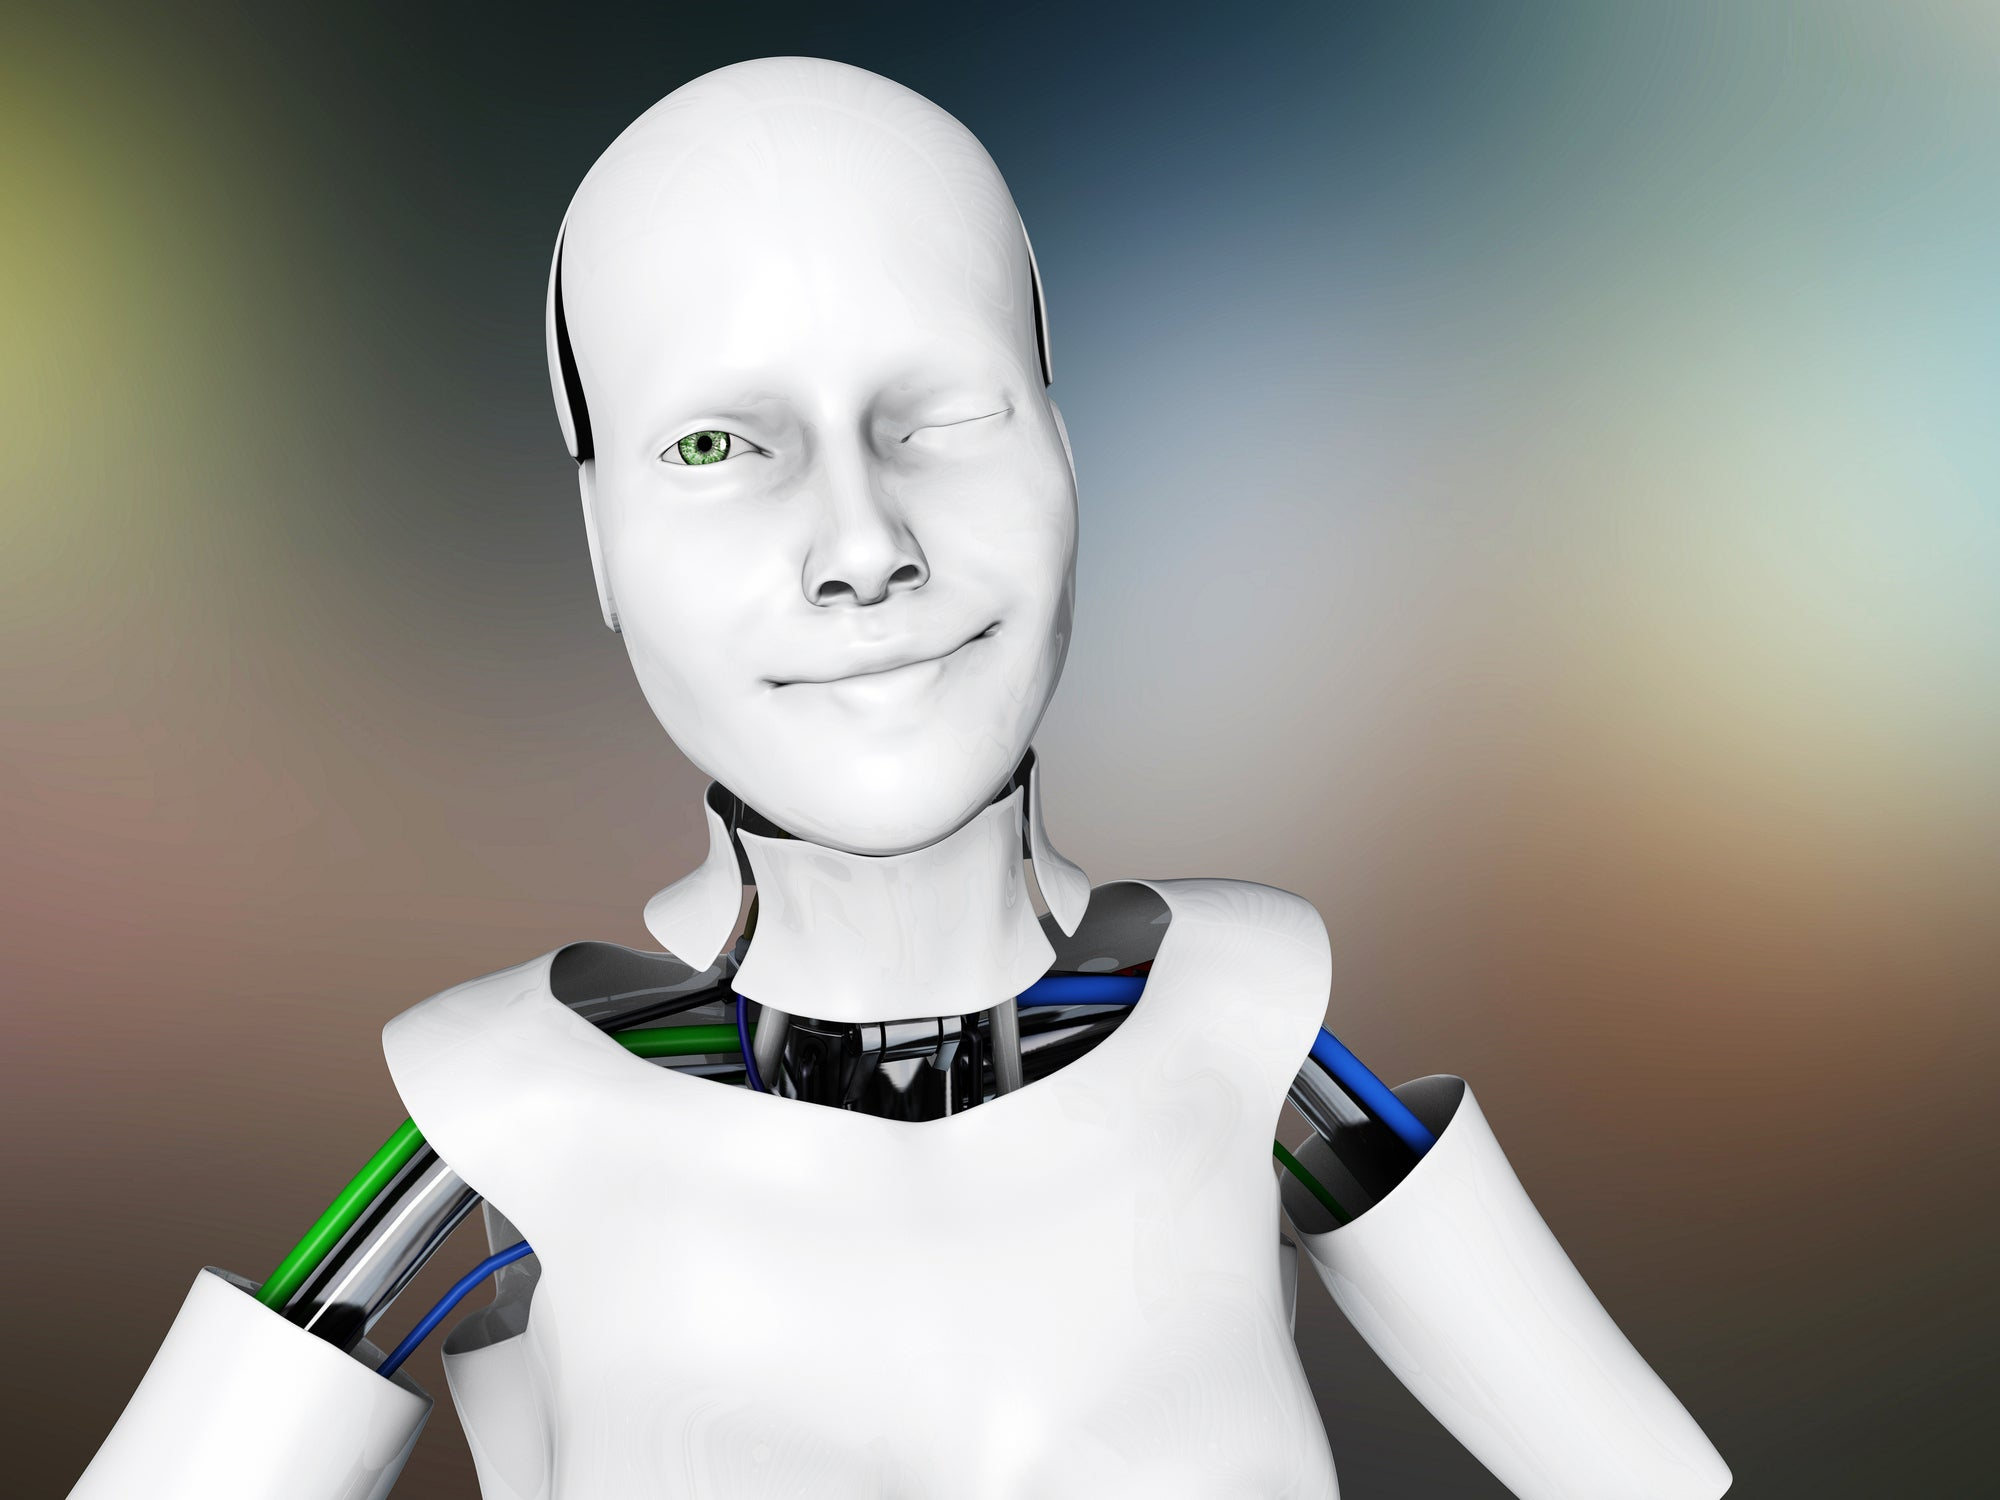 A winking robot. Chatbots that imitate humans a little too well are creepy.